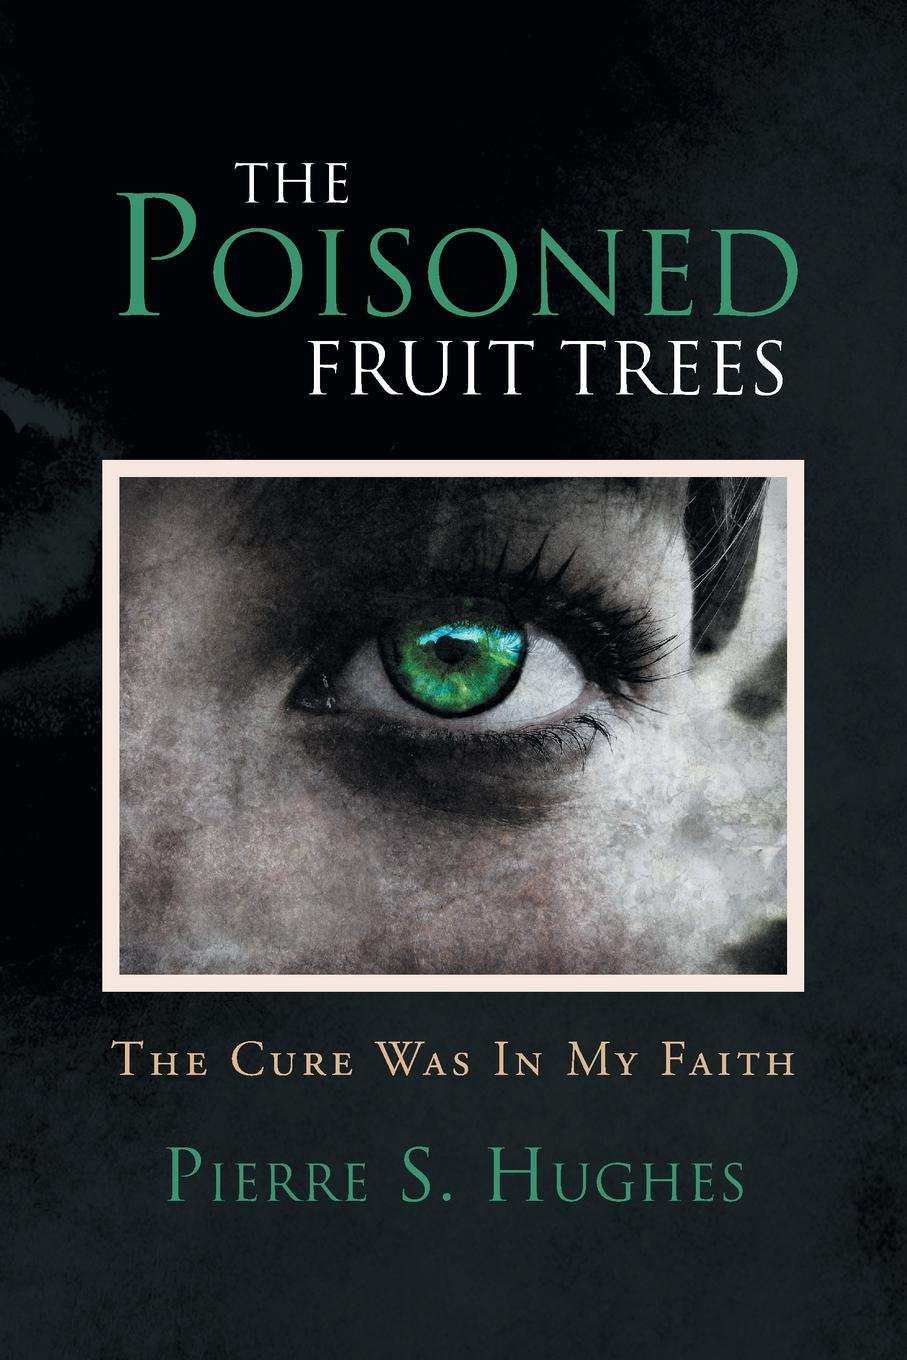 лучшая цена Pierre S. Hughes The Poisoned Fruit Trees. The Cure Was In My Faith